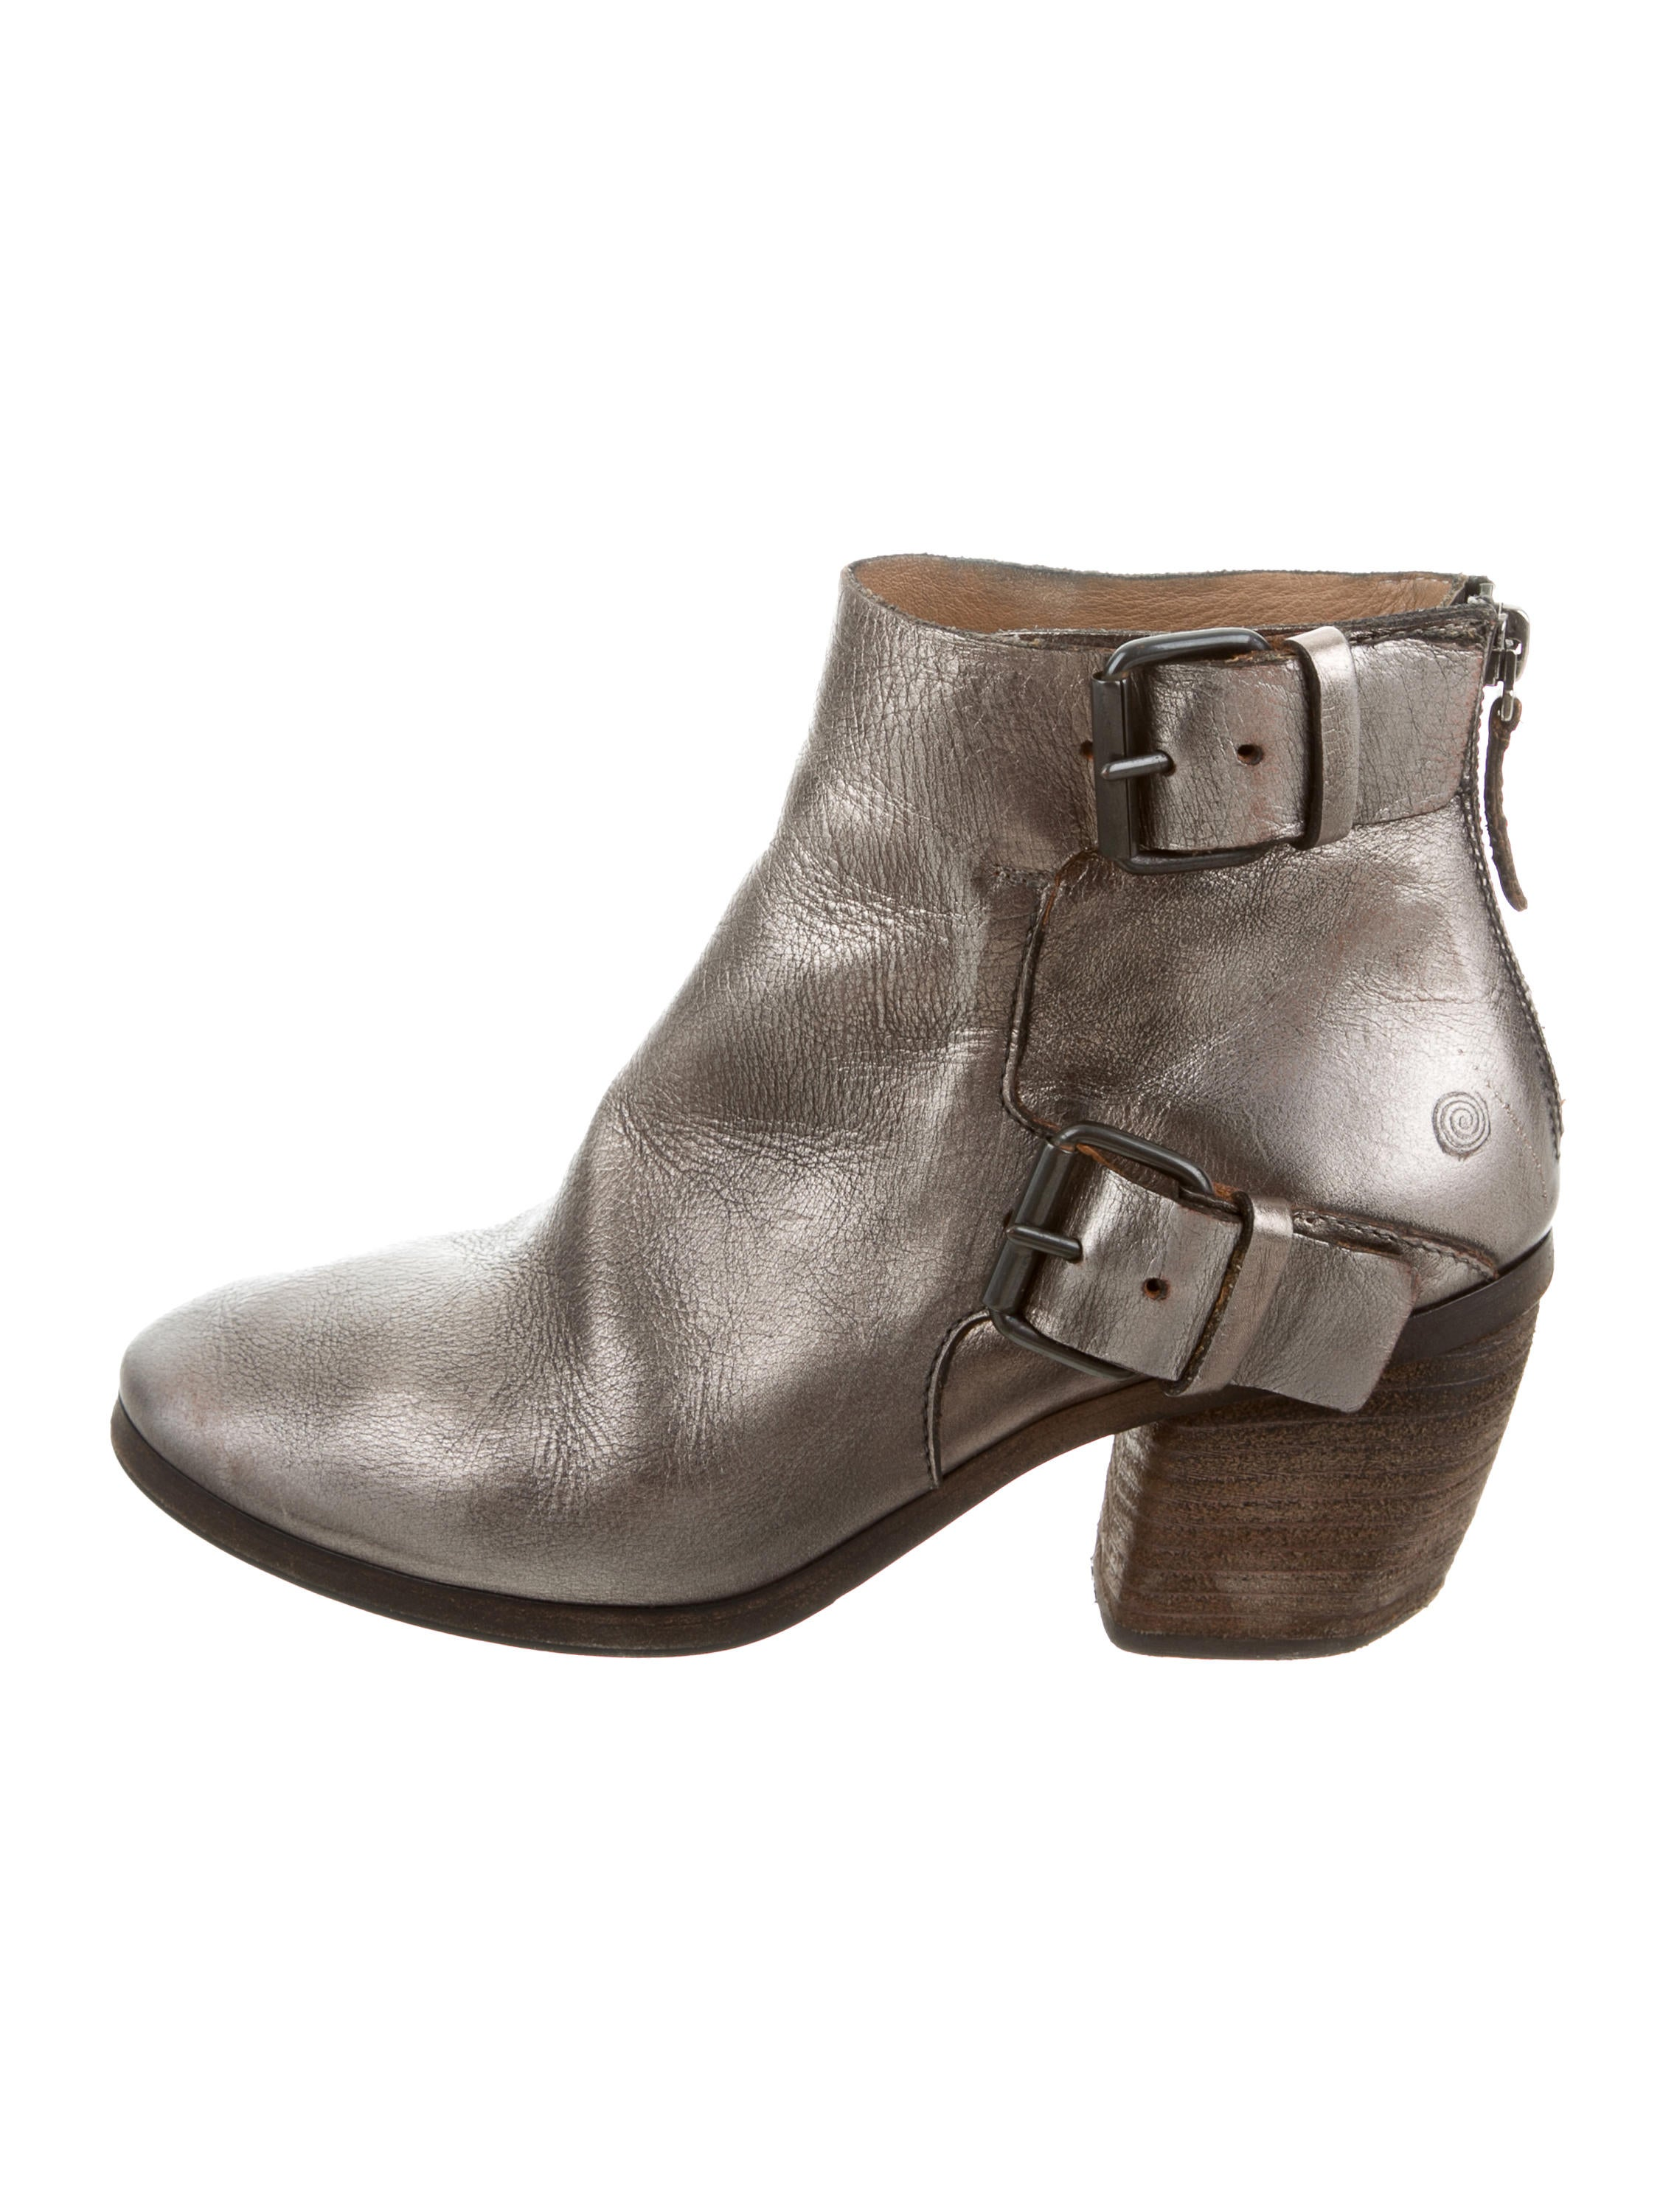 Metallic Leather Boots : Marsèll metallic leather ankle boots shoes mrc